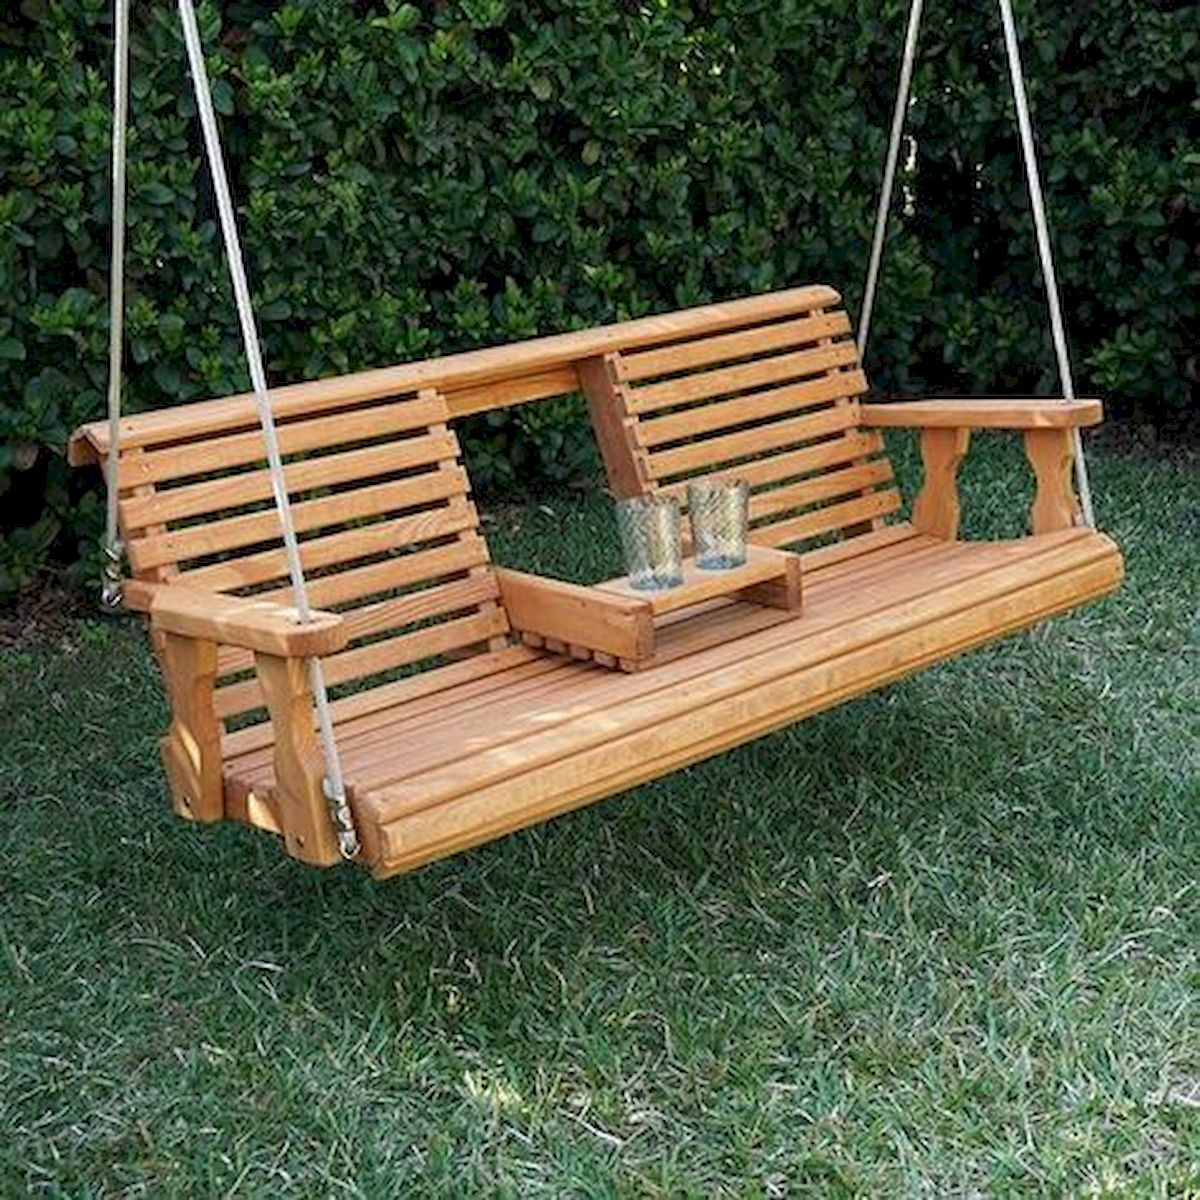 30 Fantastic DIY Wooden Pallet Swing Chair Ideas (14)